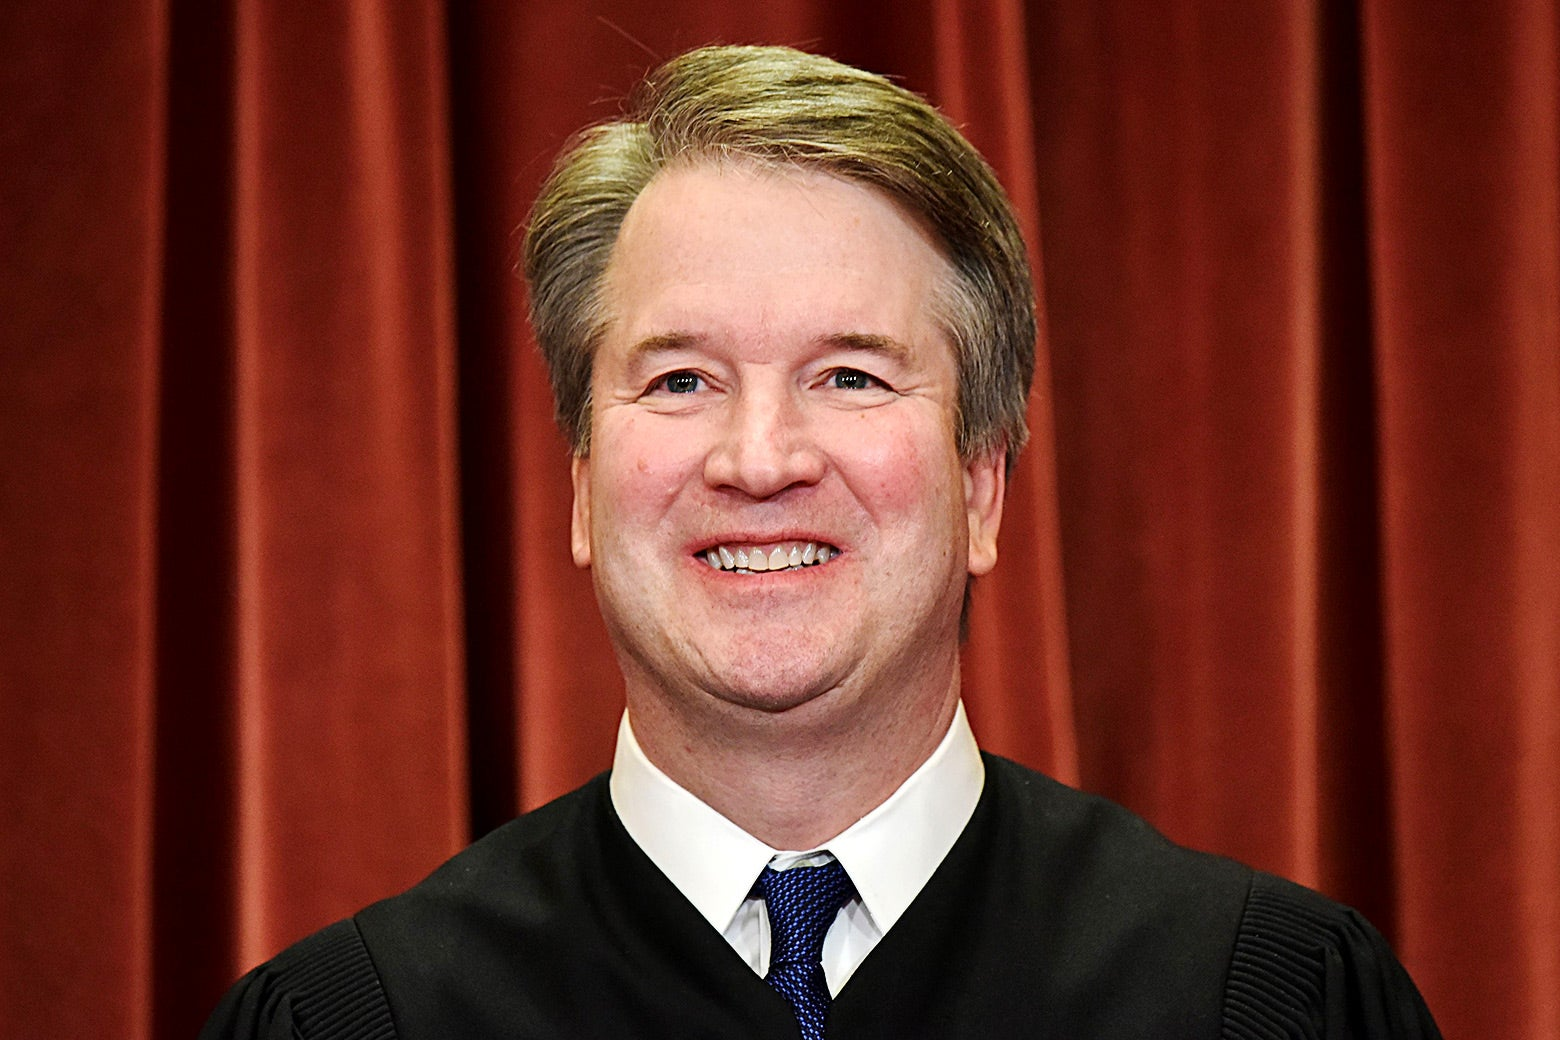 Brett Kavanaugh in a robe at the Supreme Court.